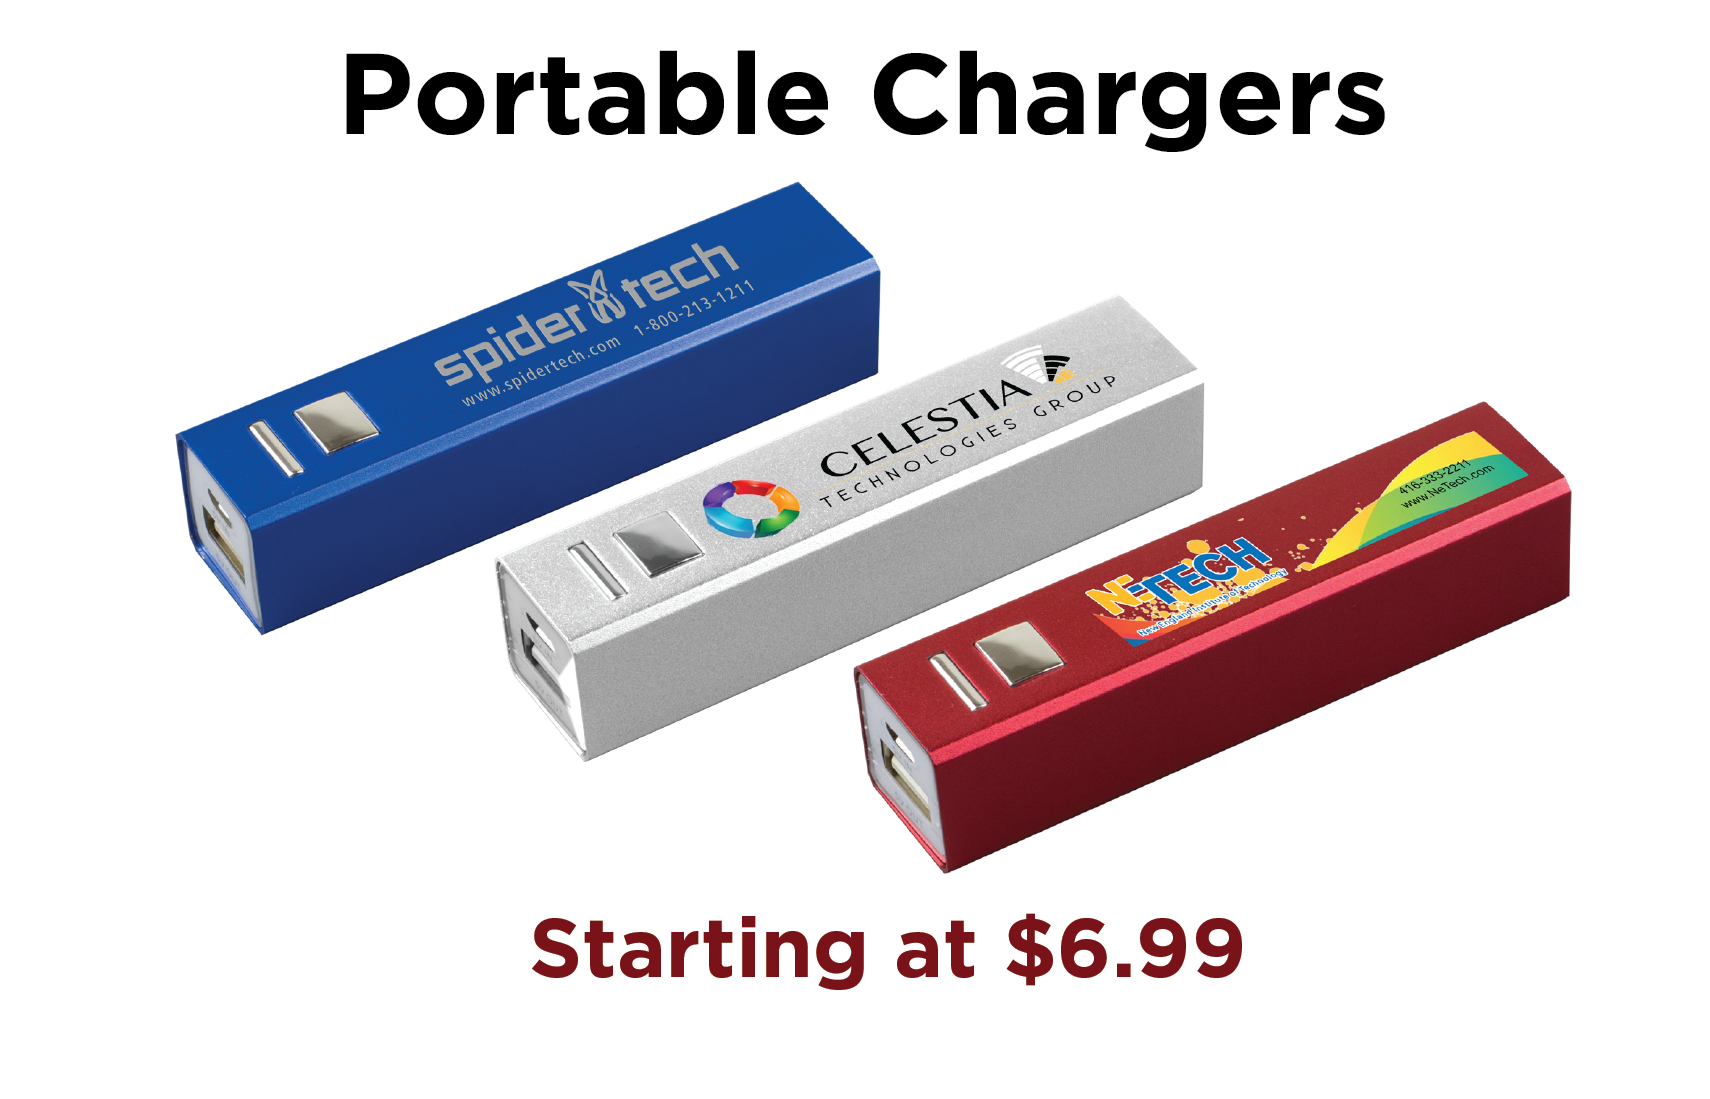 Lithium Ion Portable Chargers